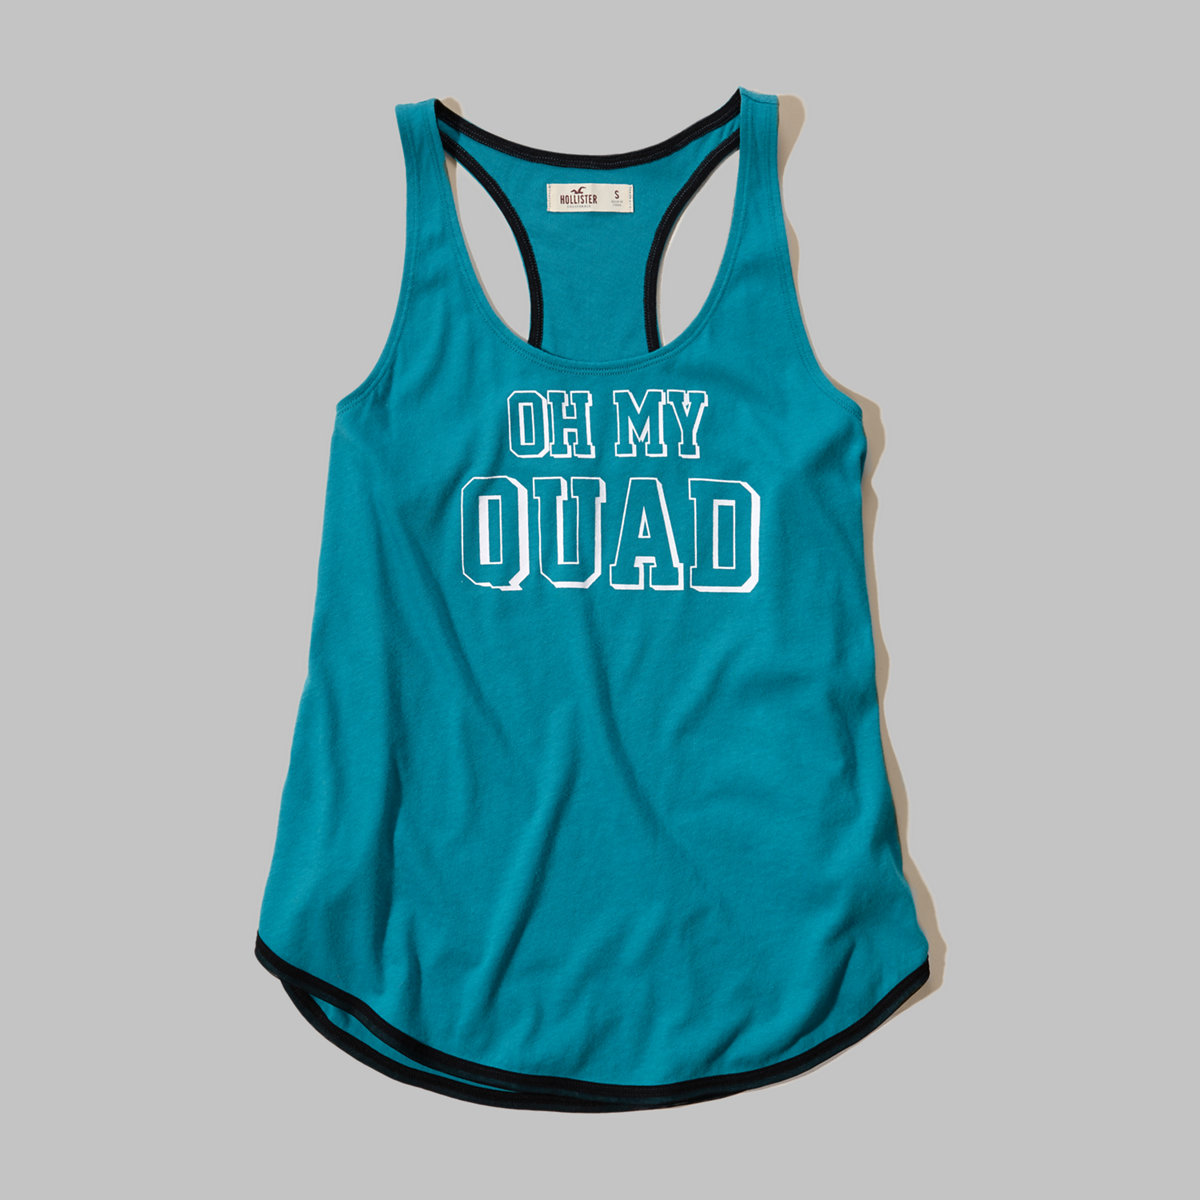 Hollister Cali Sport Graphic Swing Tank